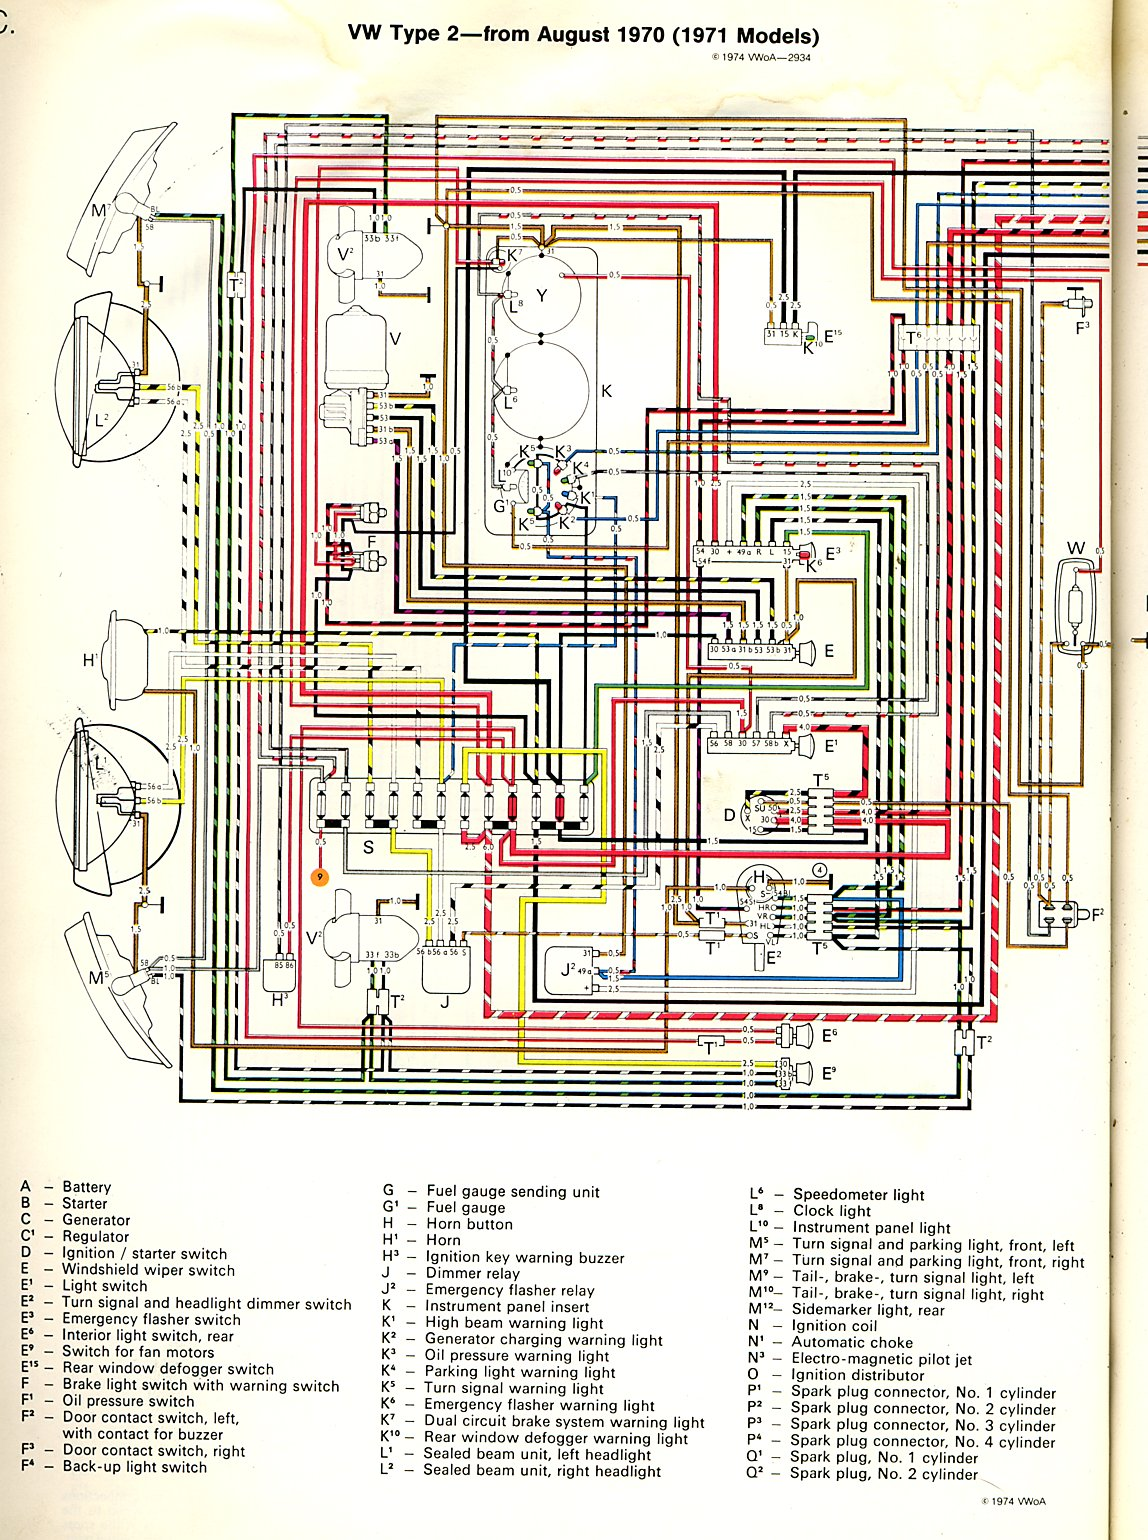 baybus_71a thesamba com type 2 wiring diagrams 74 vw bus wiring diagram at nearapp.co